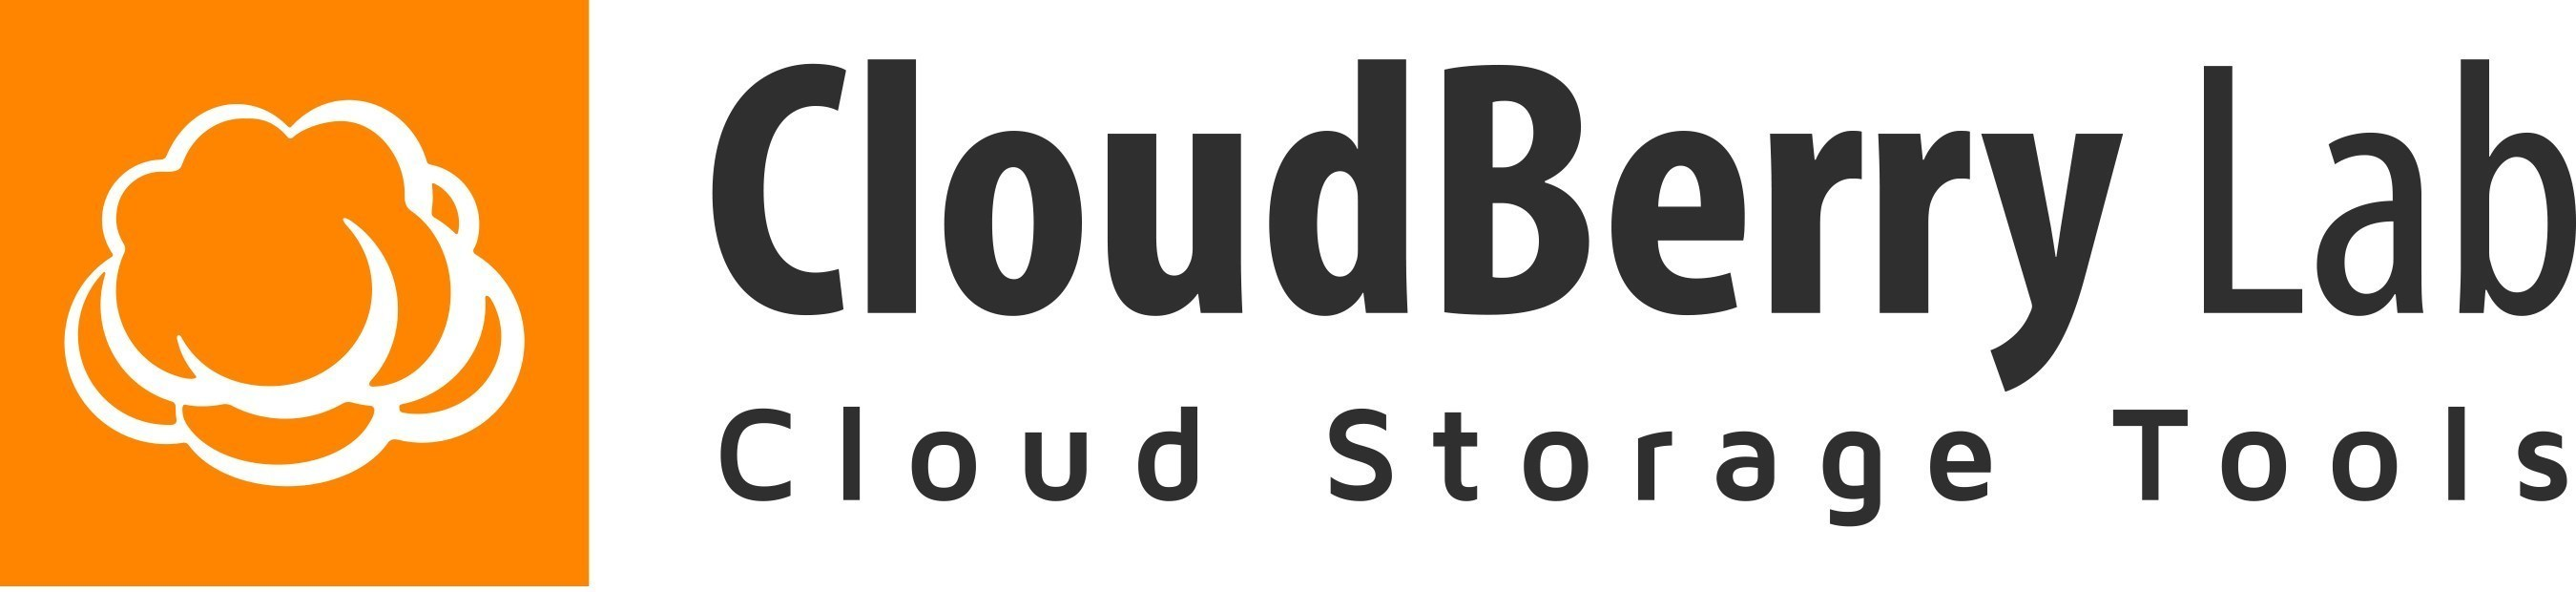 CloudBerry Lab Logo